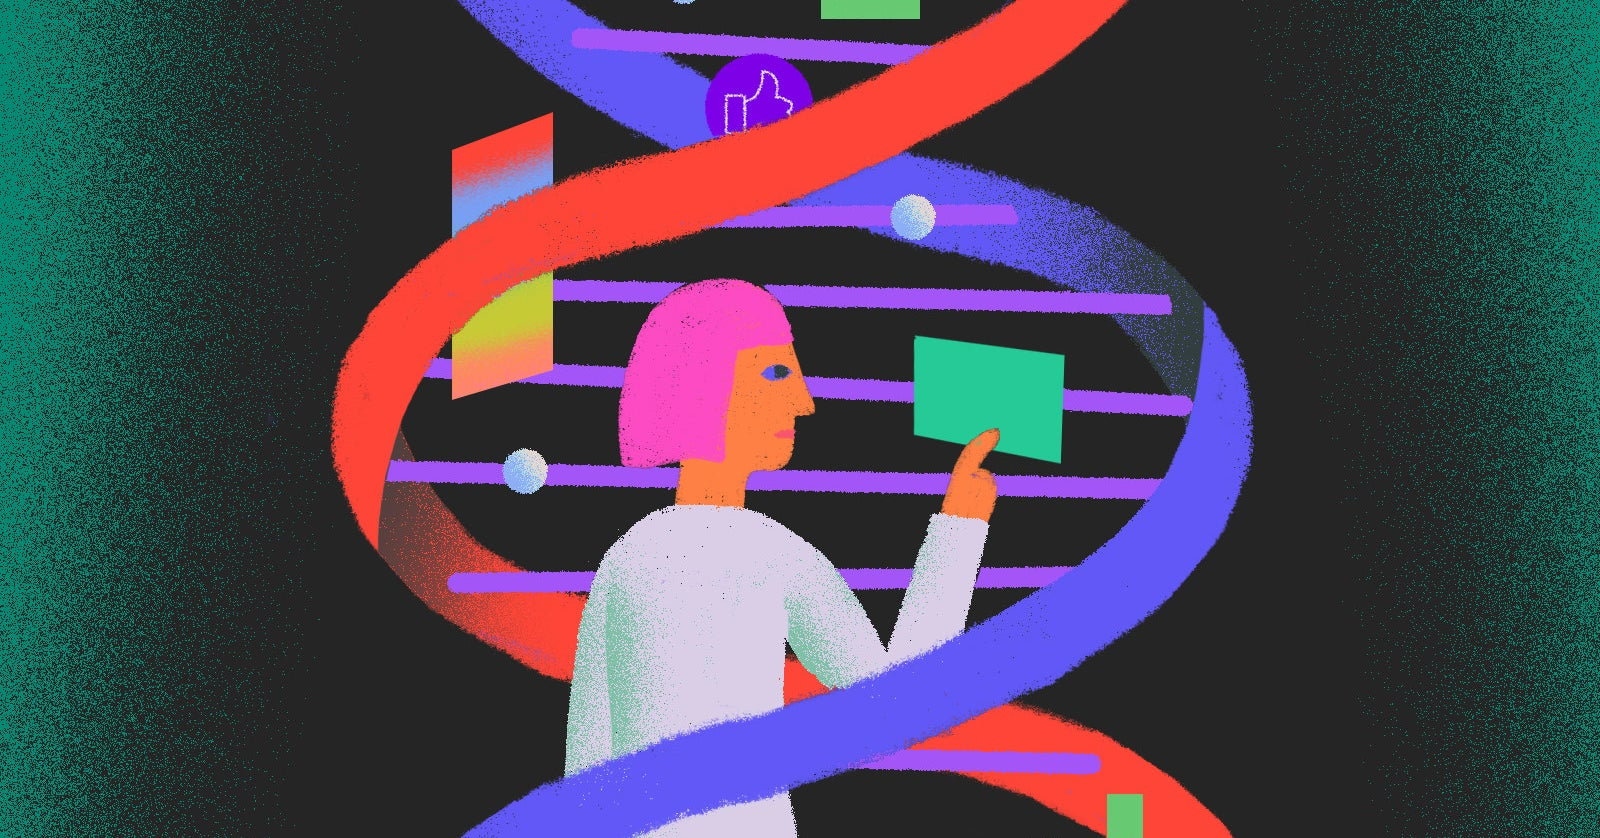 We're Living In The DNA Future, But It's Not The One We Were Promised